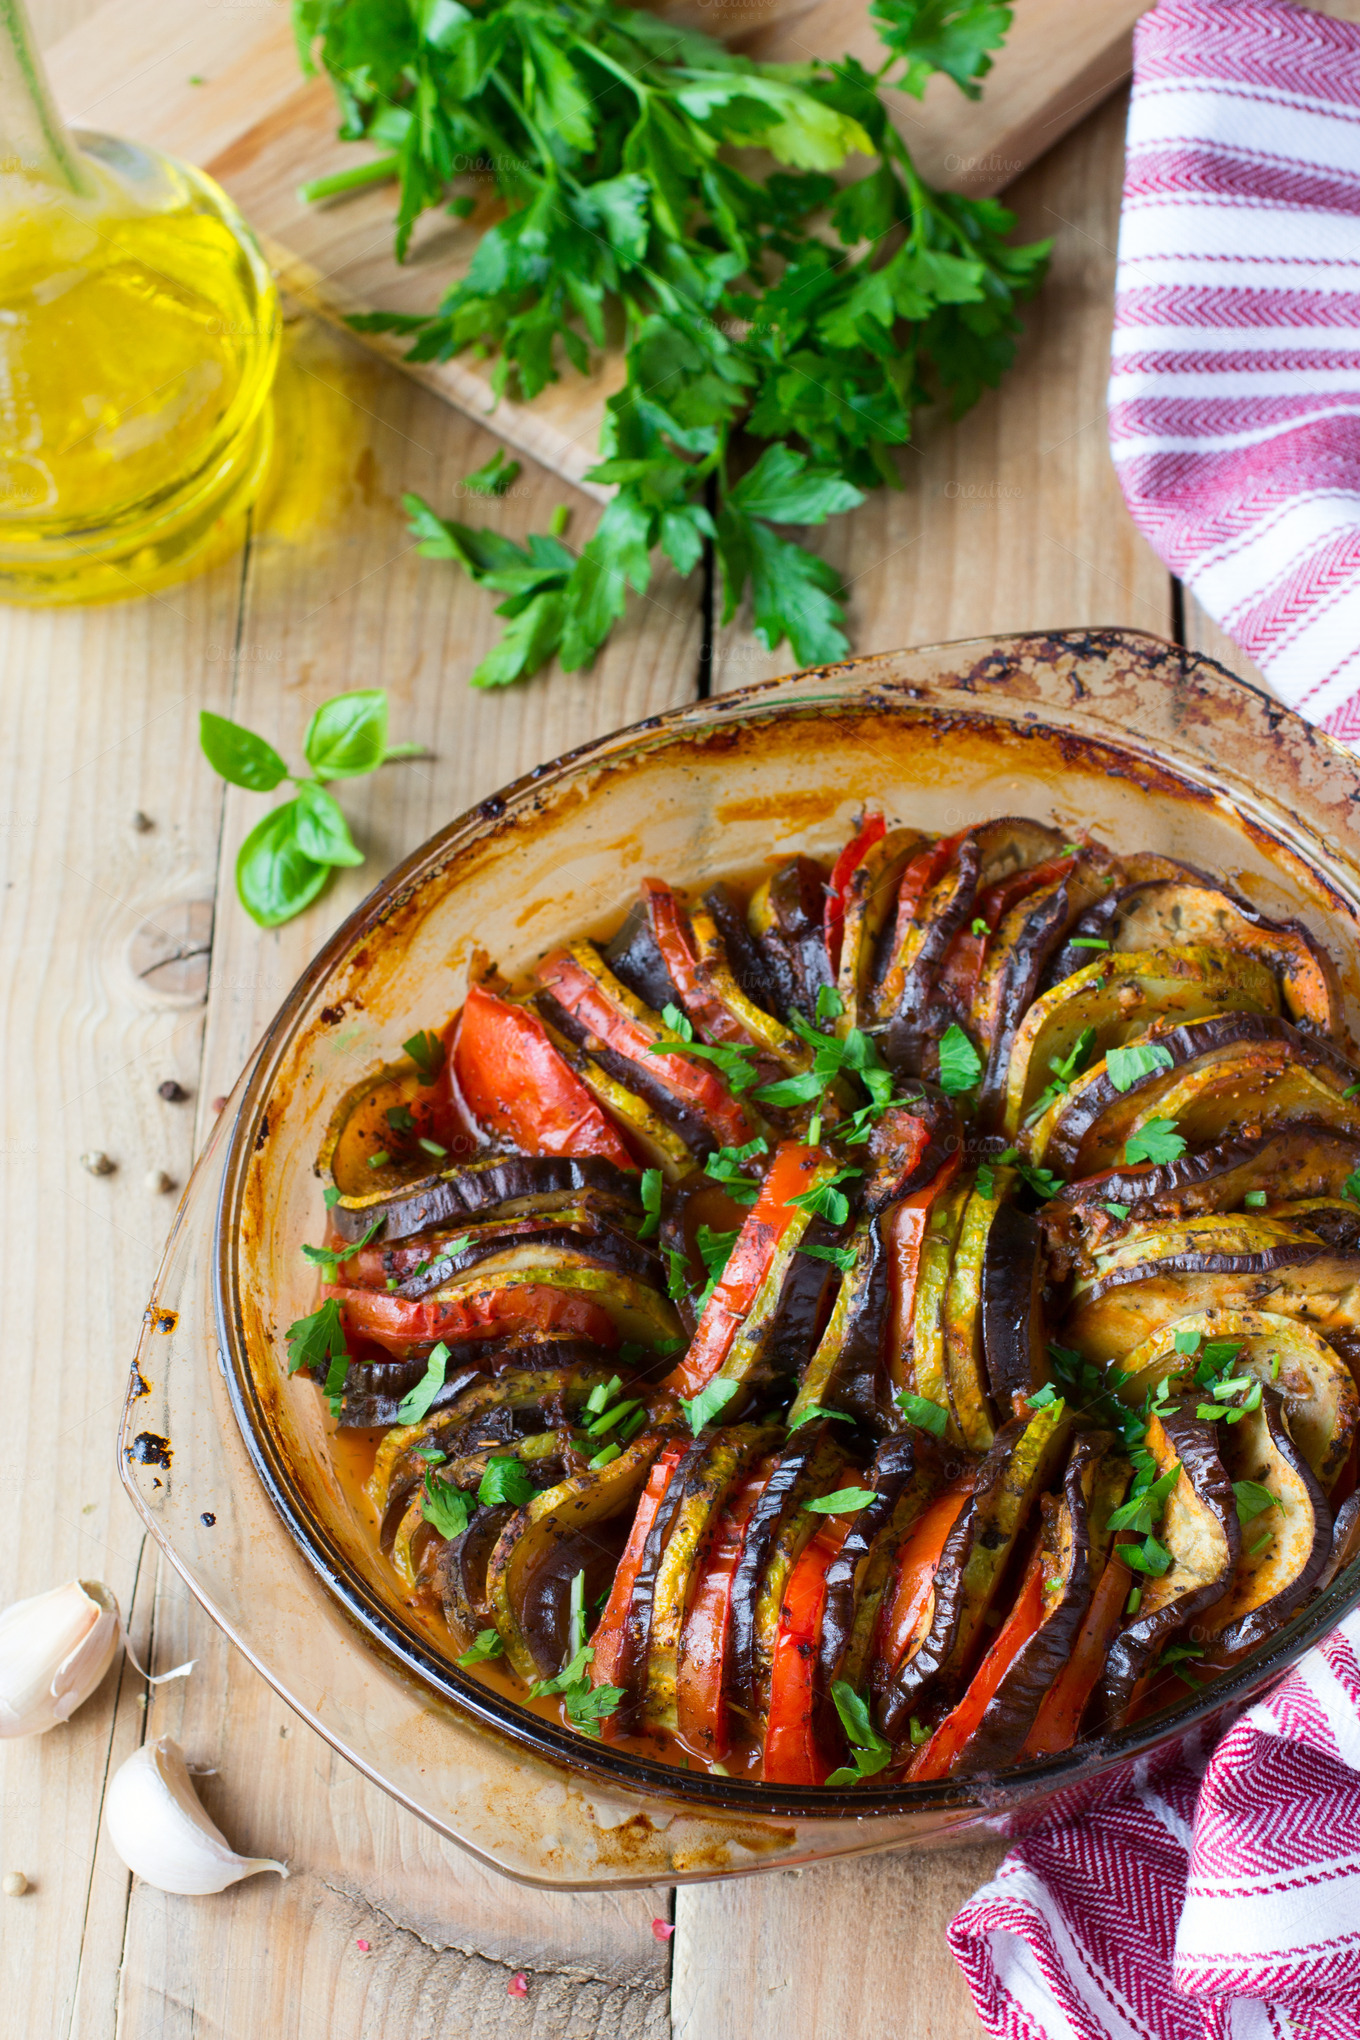 Ratatouille on rustic table ~ Food & Drink Photos on Creative Market